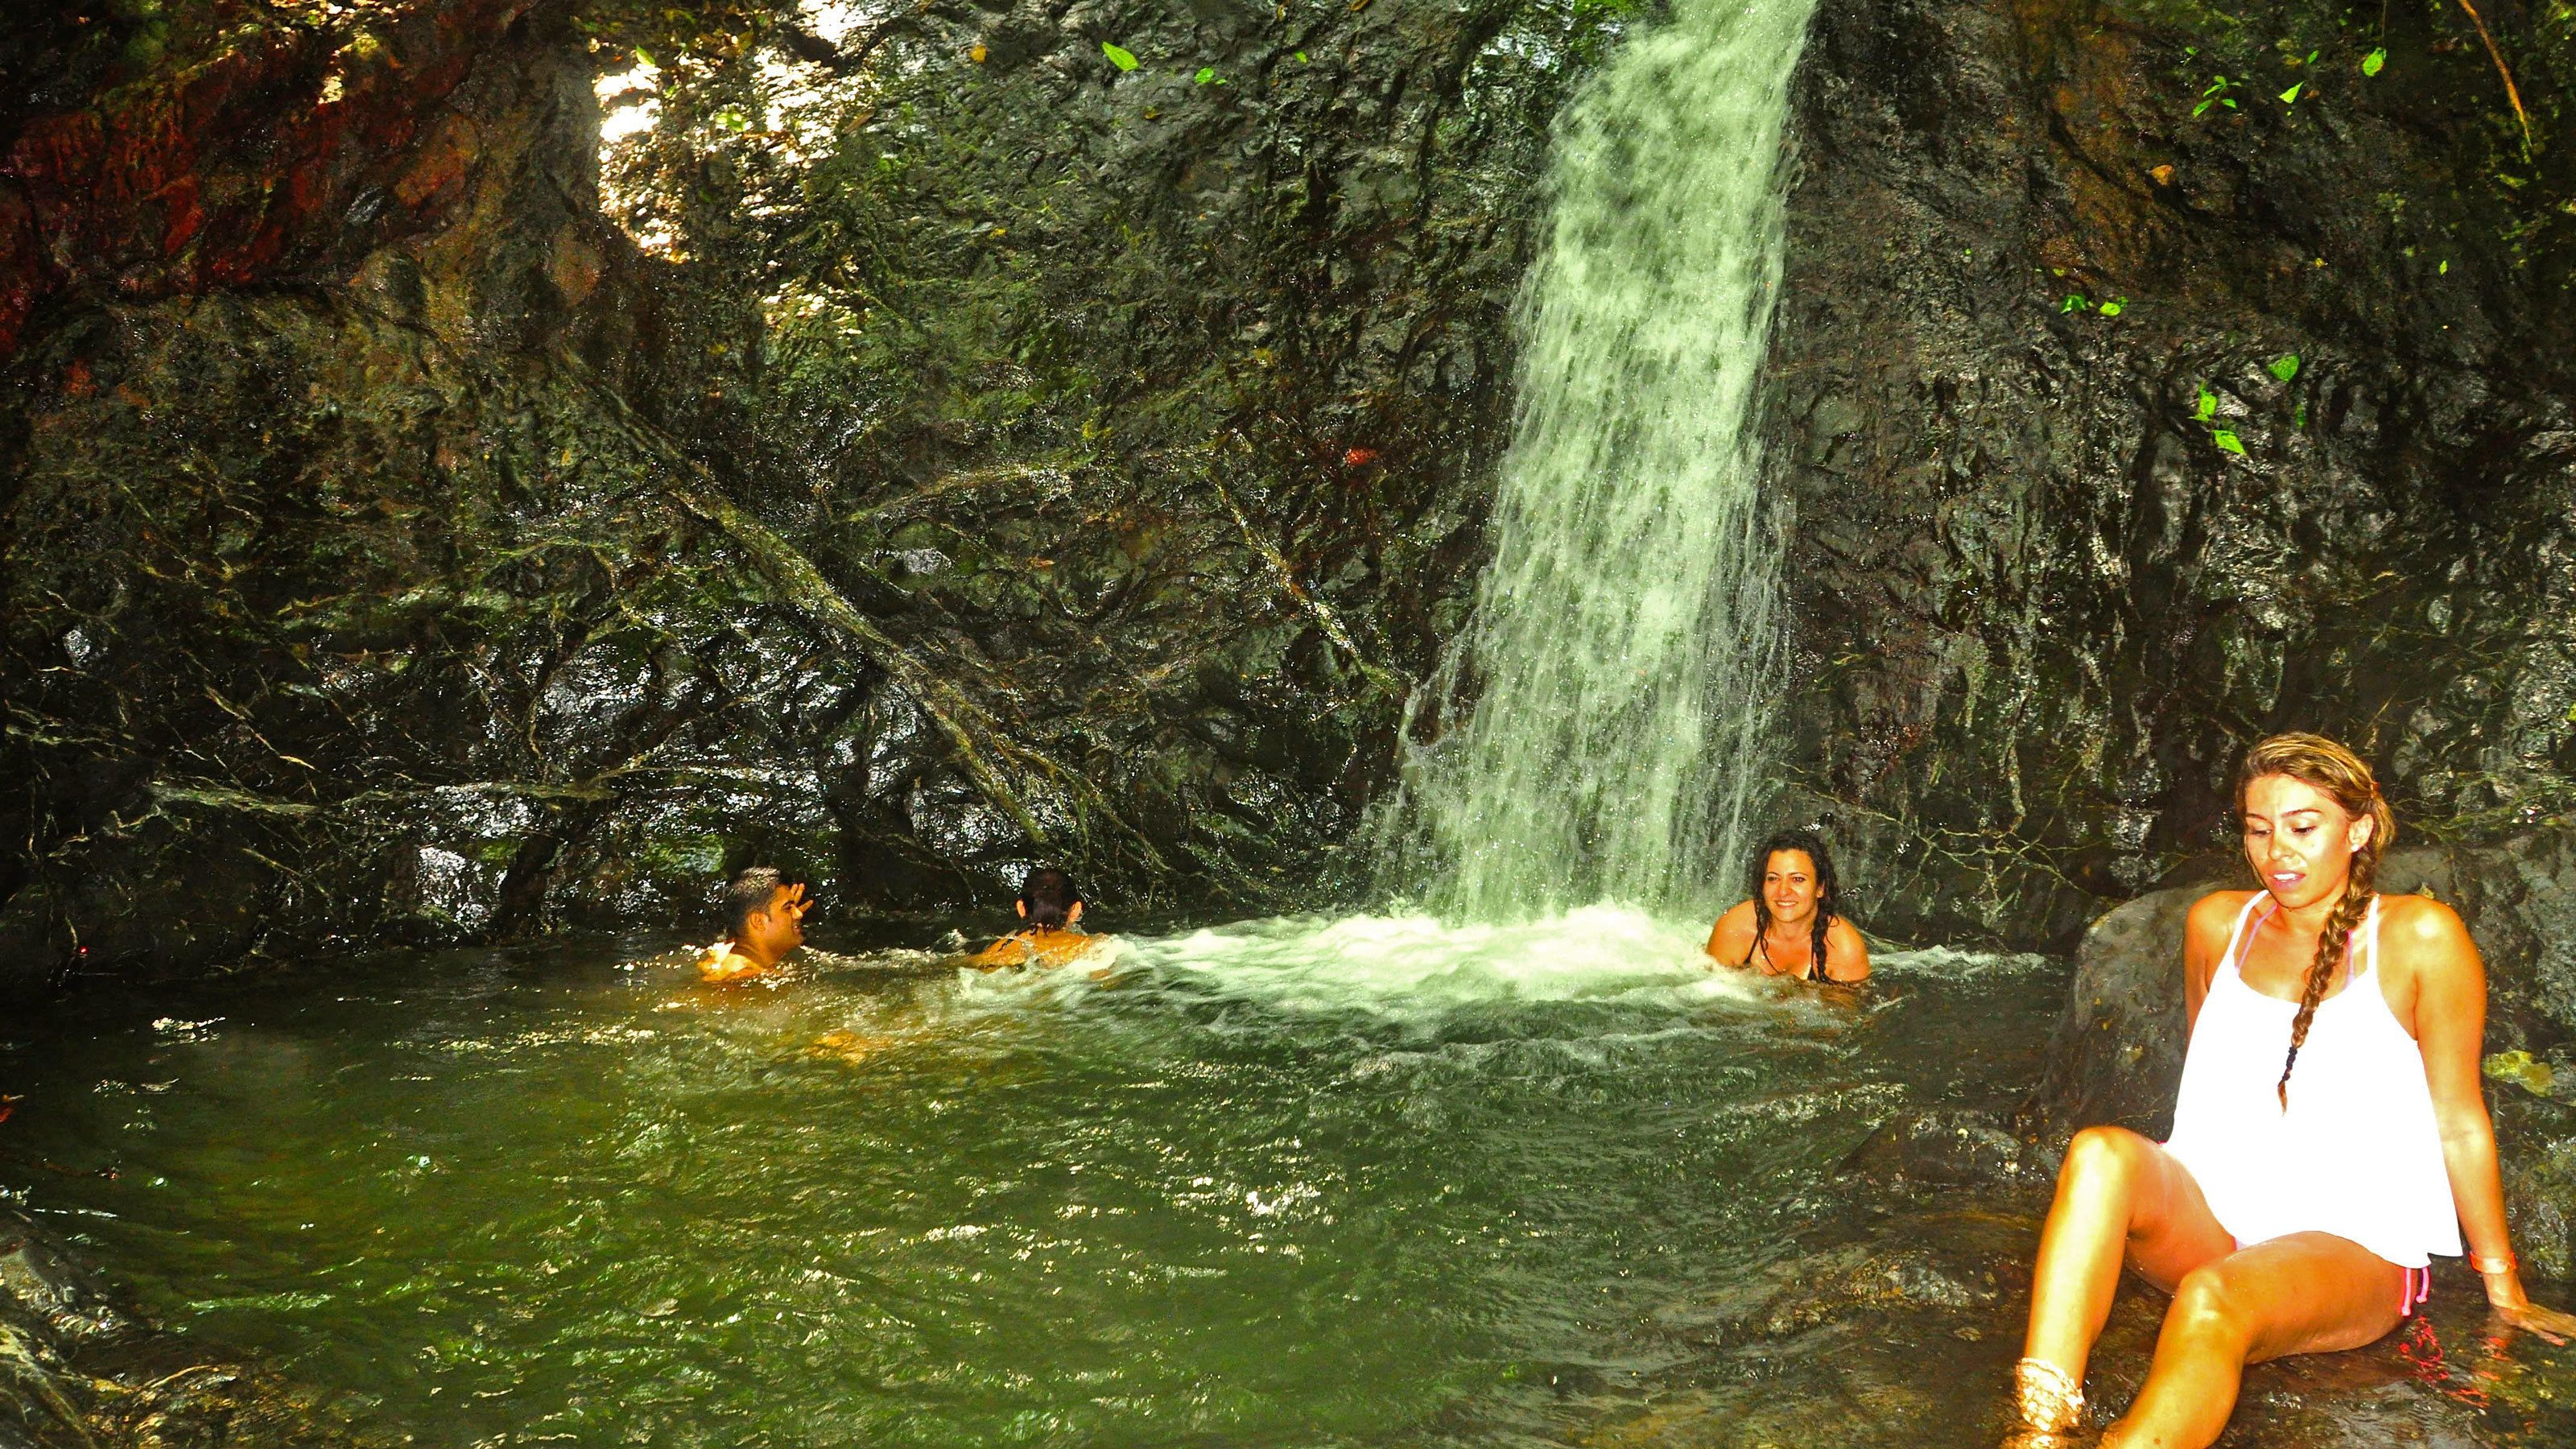 Horse riders having a dip in the small waterfall in Jaco